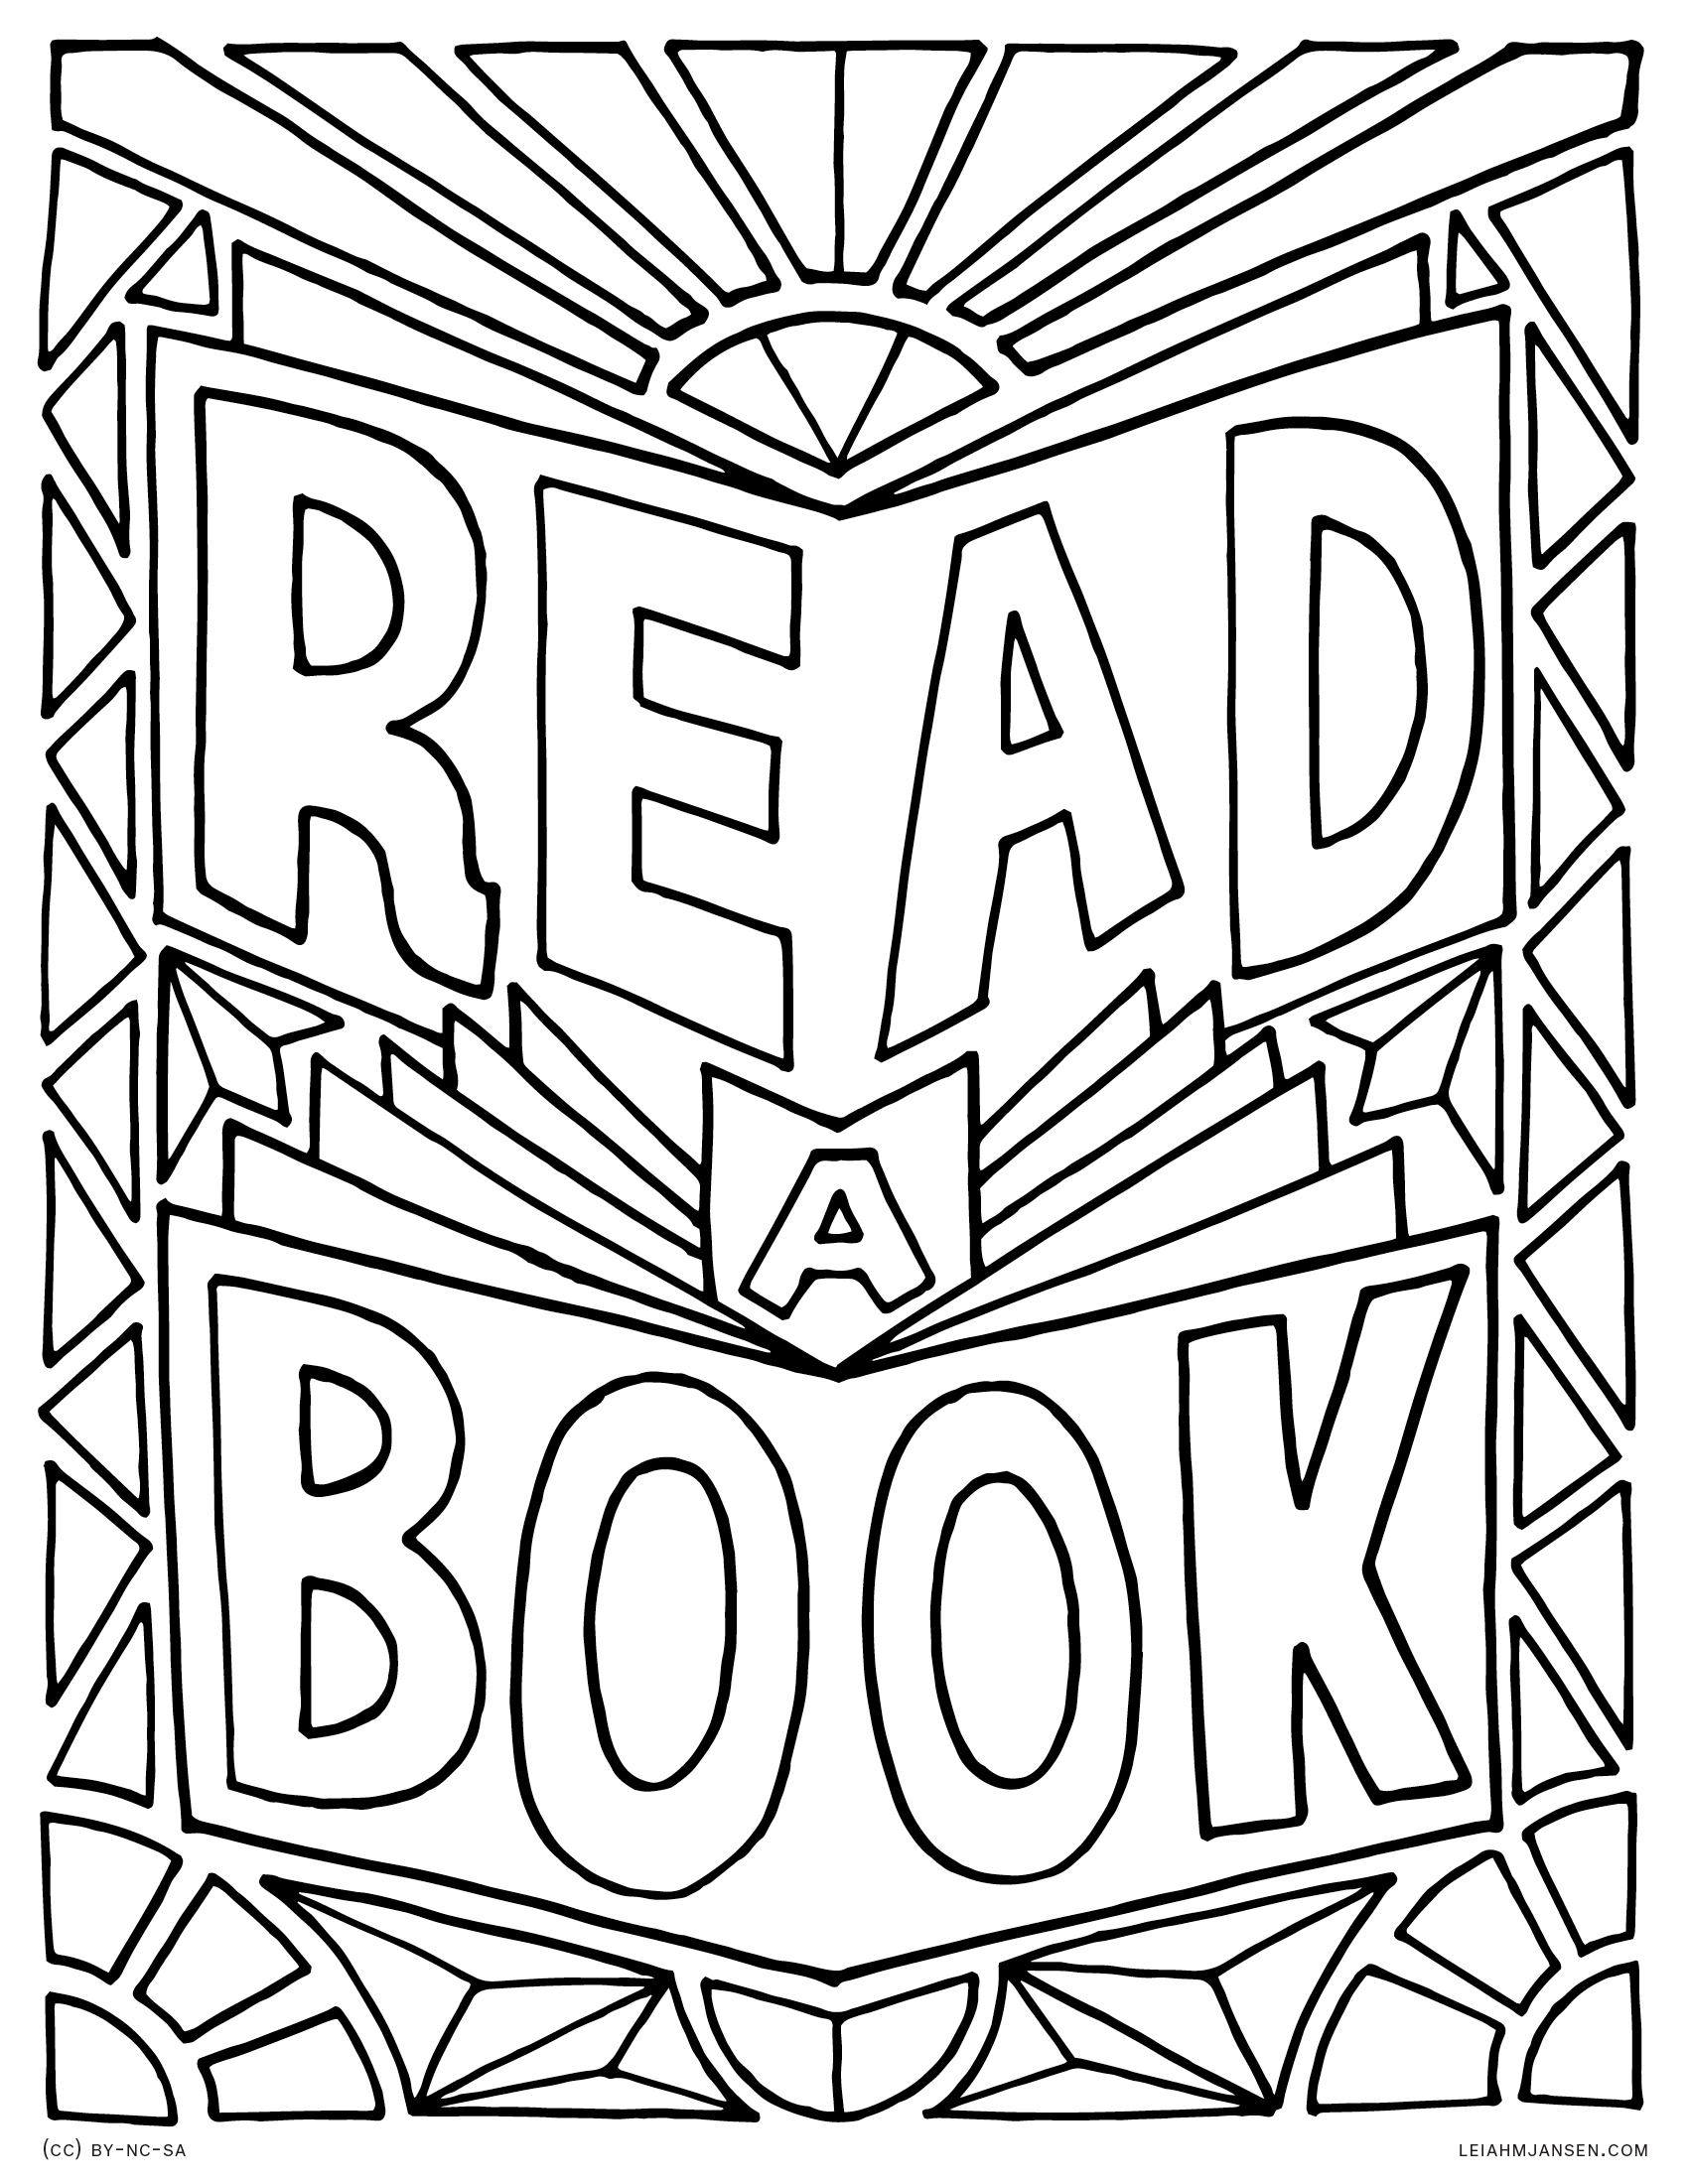 reading coloring worksheets reading book coloring page coloring home worksheets coloring reading 1 1